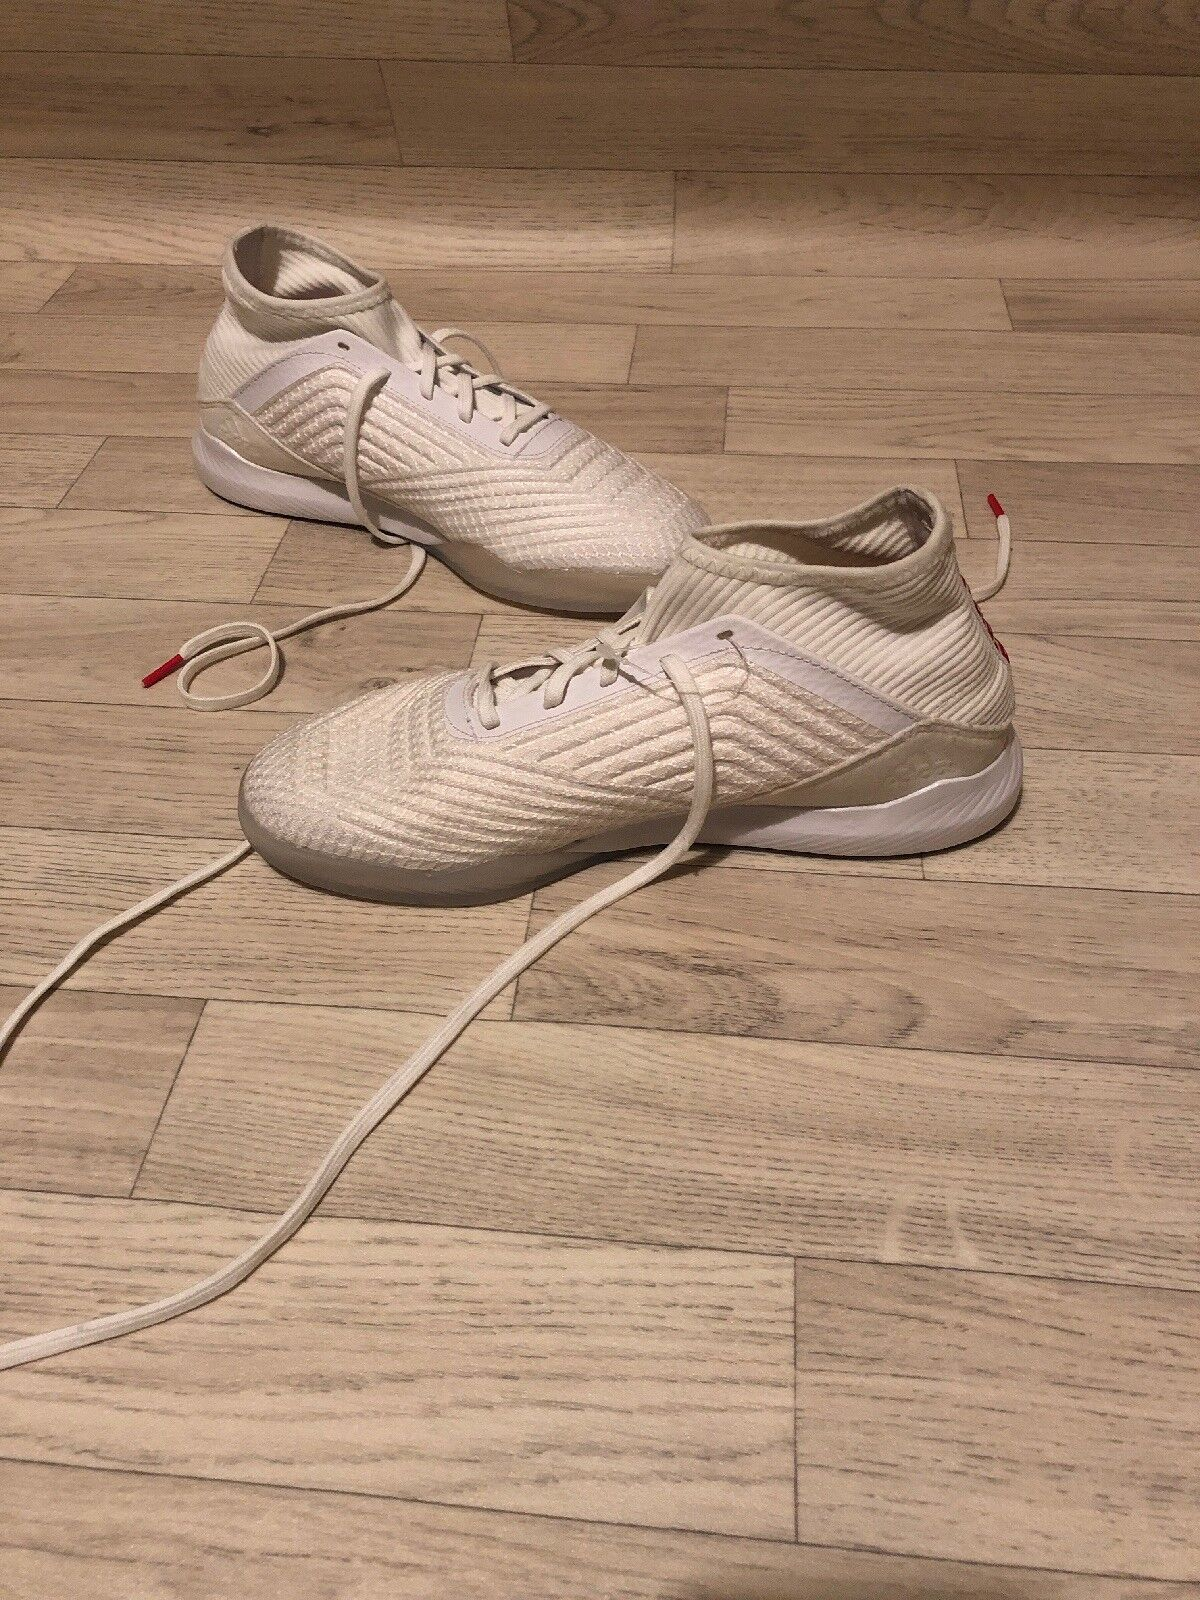 ADIDAS PREDATOR TANGO 18.3 INDOOR BOOTS WHITE LIMITED EDITION White Out